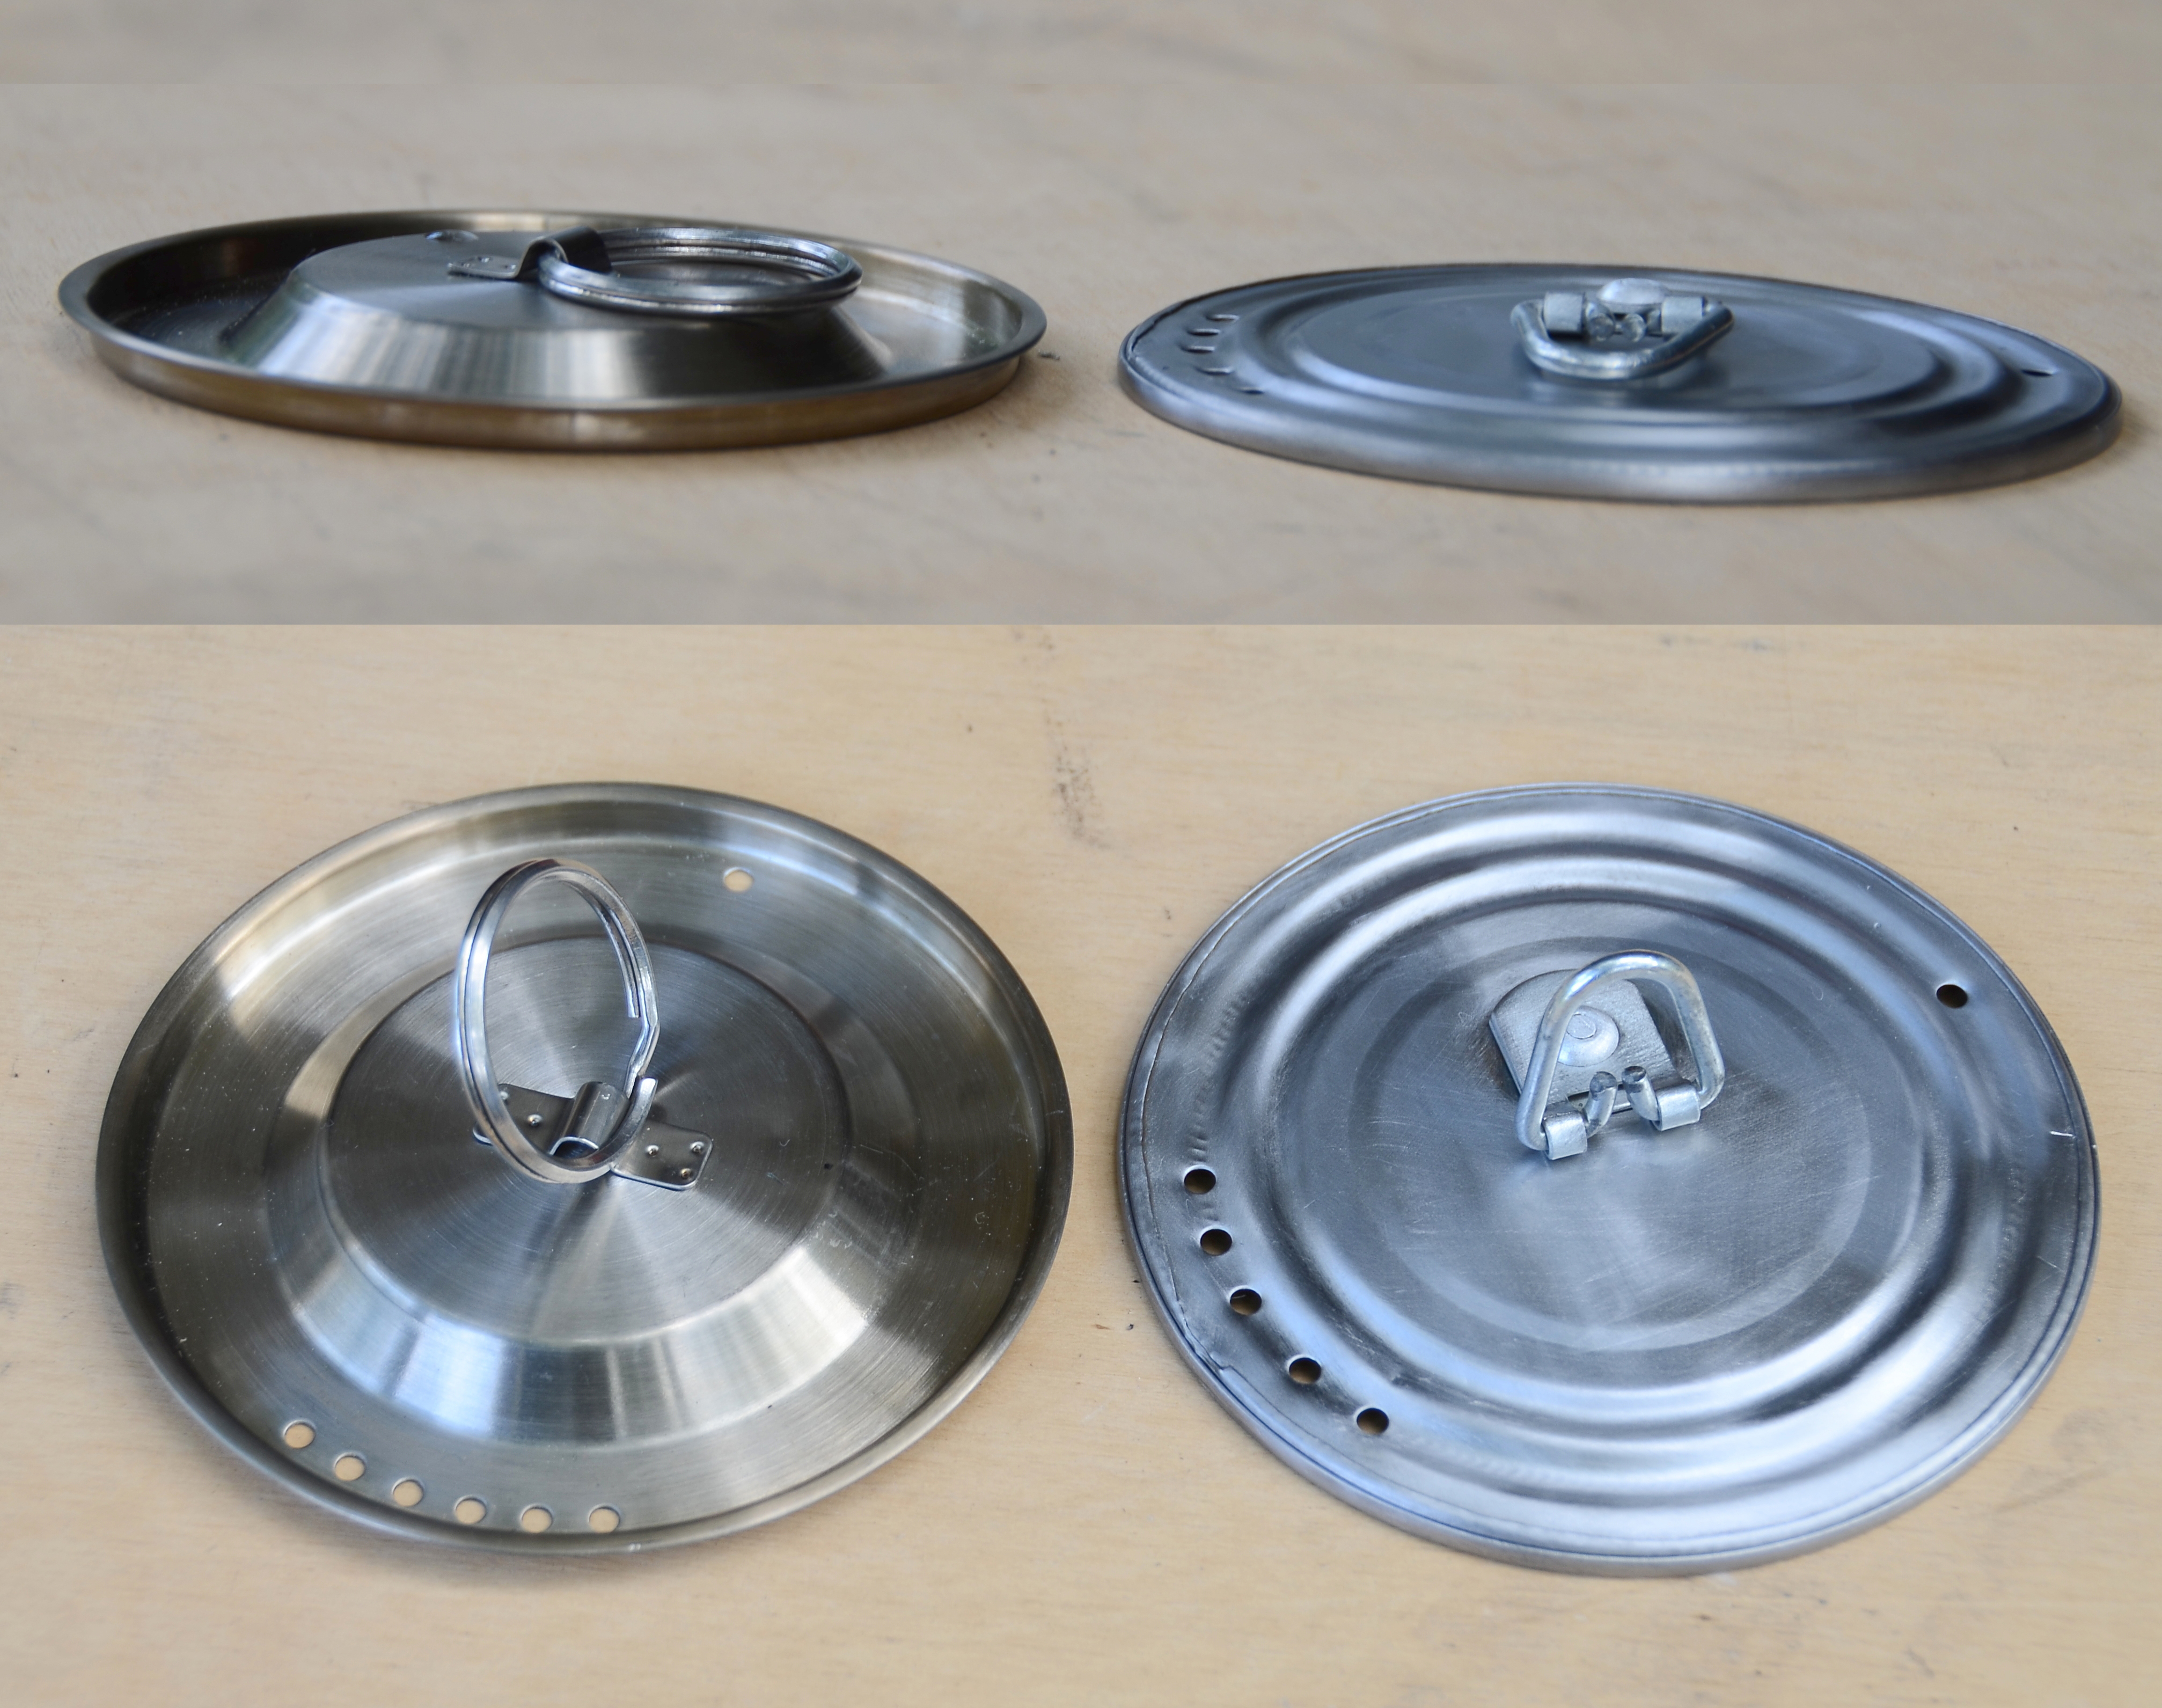 Picture of Completing the DIY Lids & Comparing Results